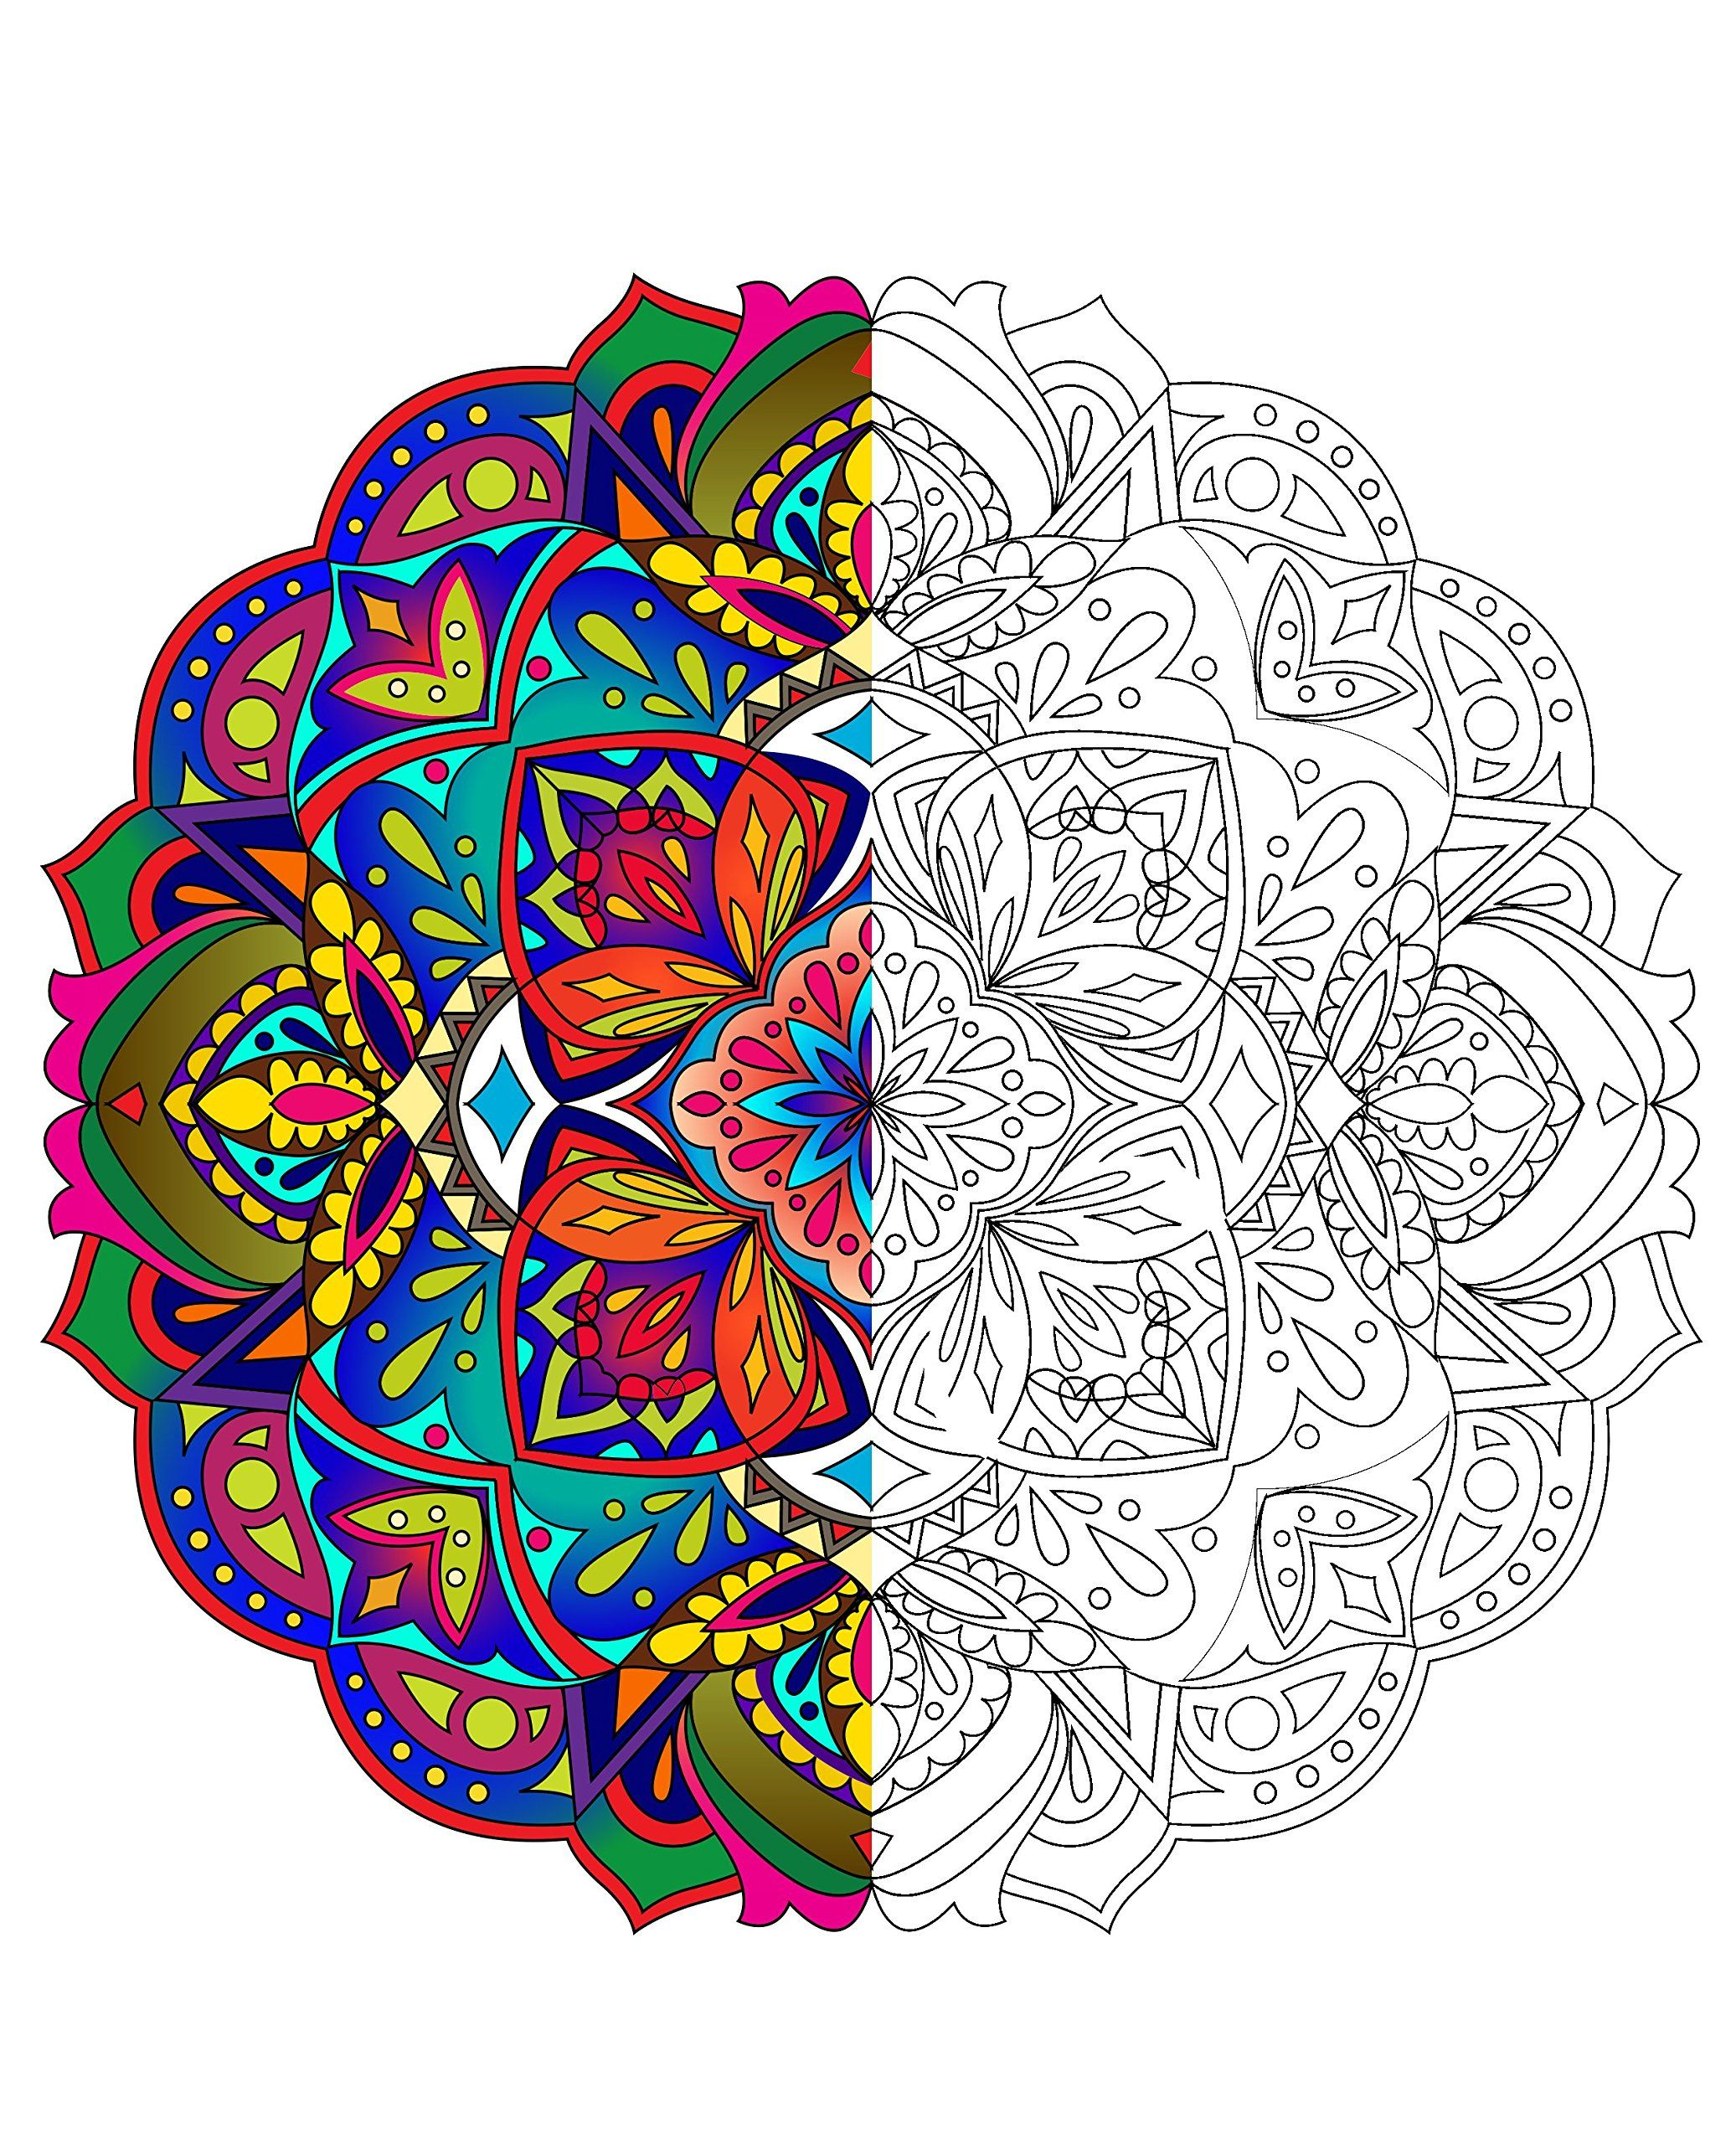 Mandala Coloring Book For Adults With Thick Artist Quality Paper Hardback Covers And Spiral Binding By Mandala Coloring Books Mandala Coloring Coloring Books